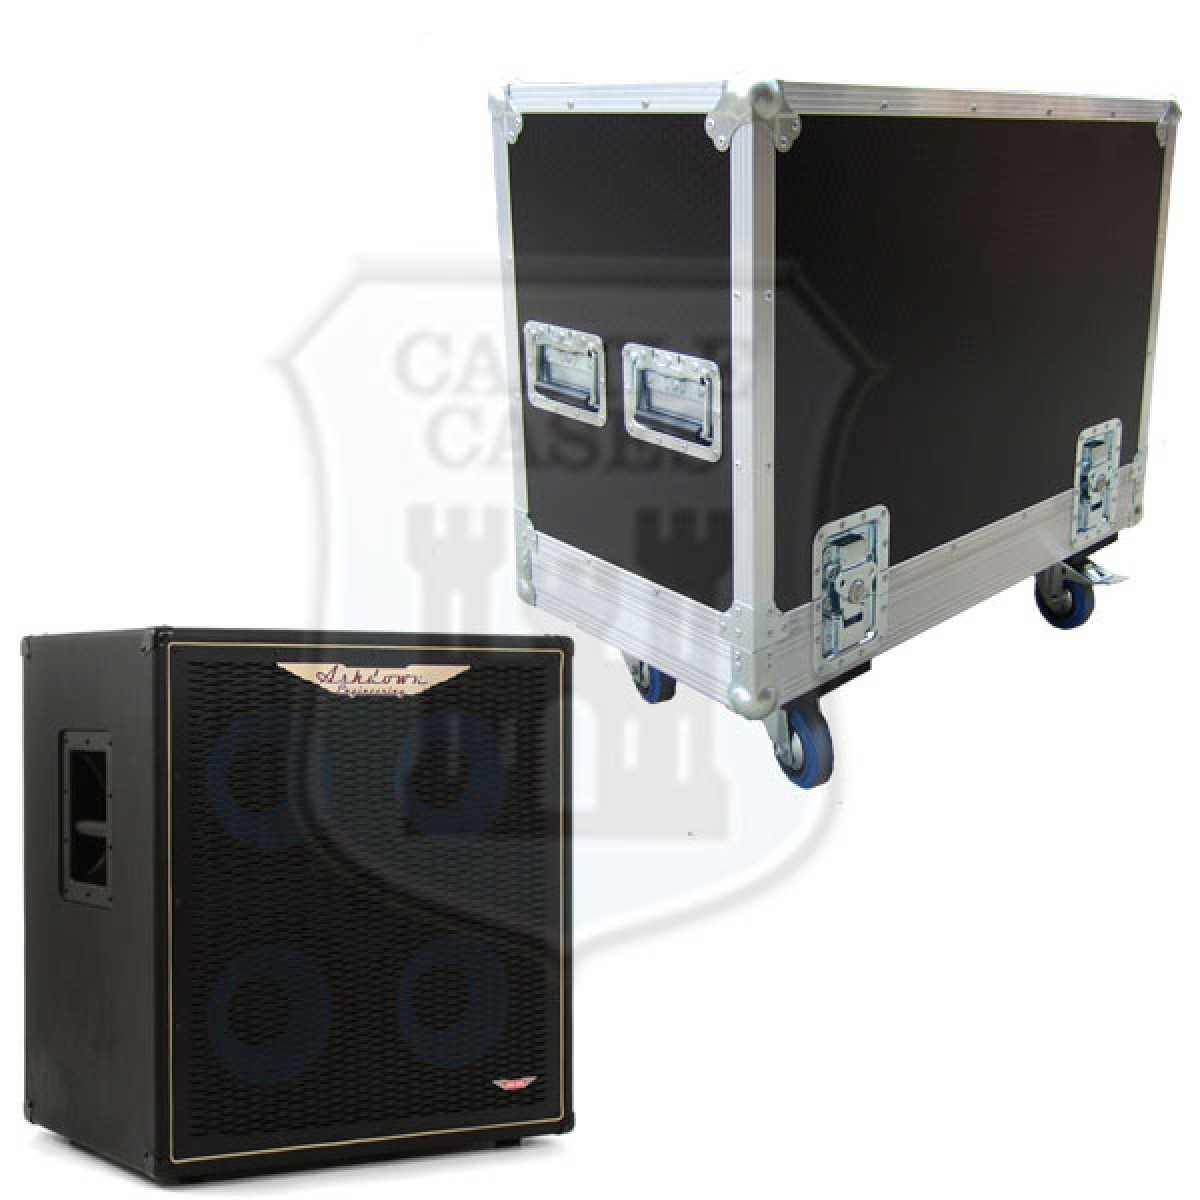 Ashdown ABM 410T Cab Flightcase